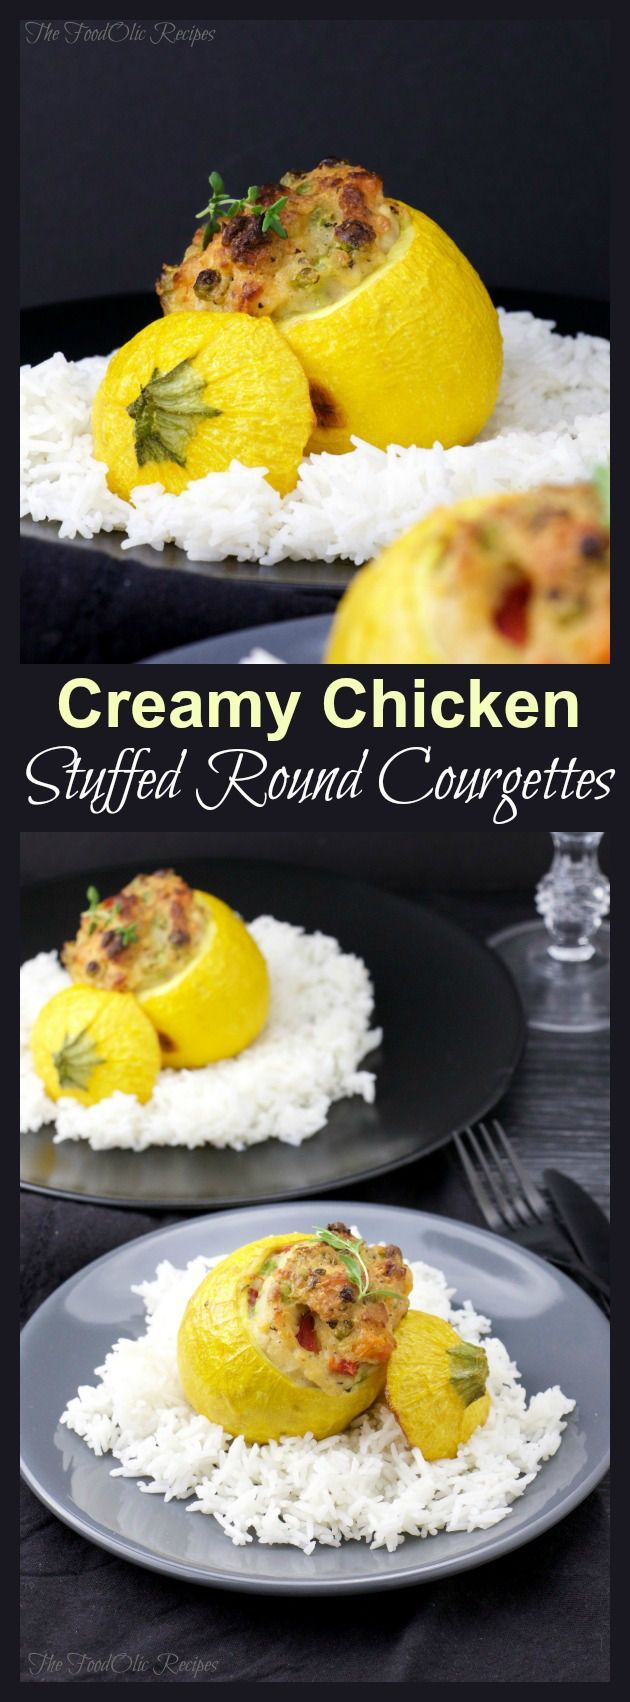 Creamy Chicken Stuffed Round Courgettes is a light meal with a whole lot of veggies like sweet peas, red pepper and carrot for a fun, creamy and colorful bite. #courgette #chicken #bechamel